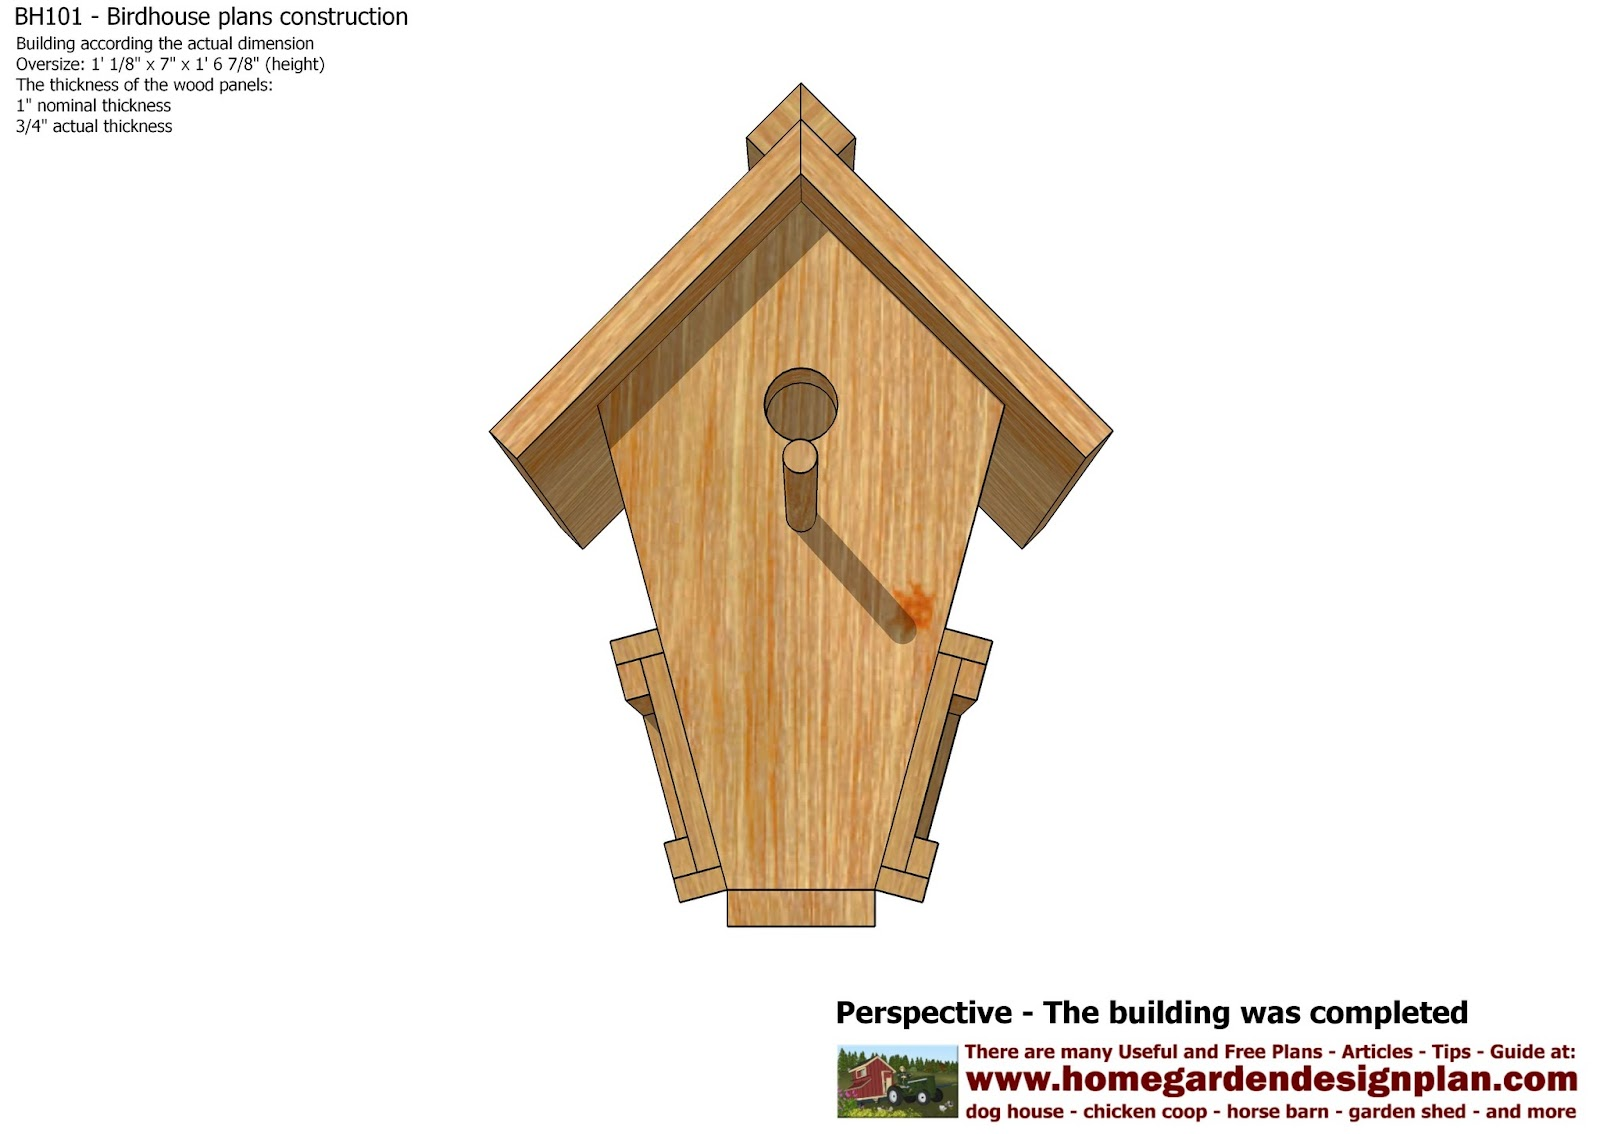 essay on how to bulid a bird house In the neolithic and the bronze age, stilt-house settlements were common in the alpine and pianura padana regions remains have been found at the ljubljana marshes in slovenia and at the mondsee and attersee lakes in upper austria, for example.